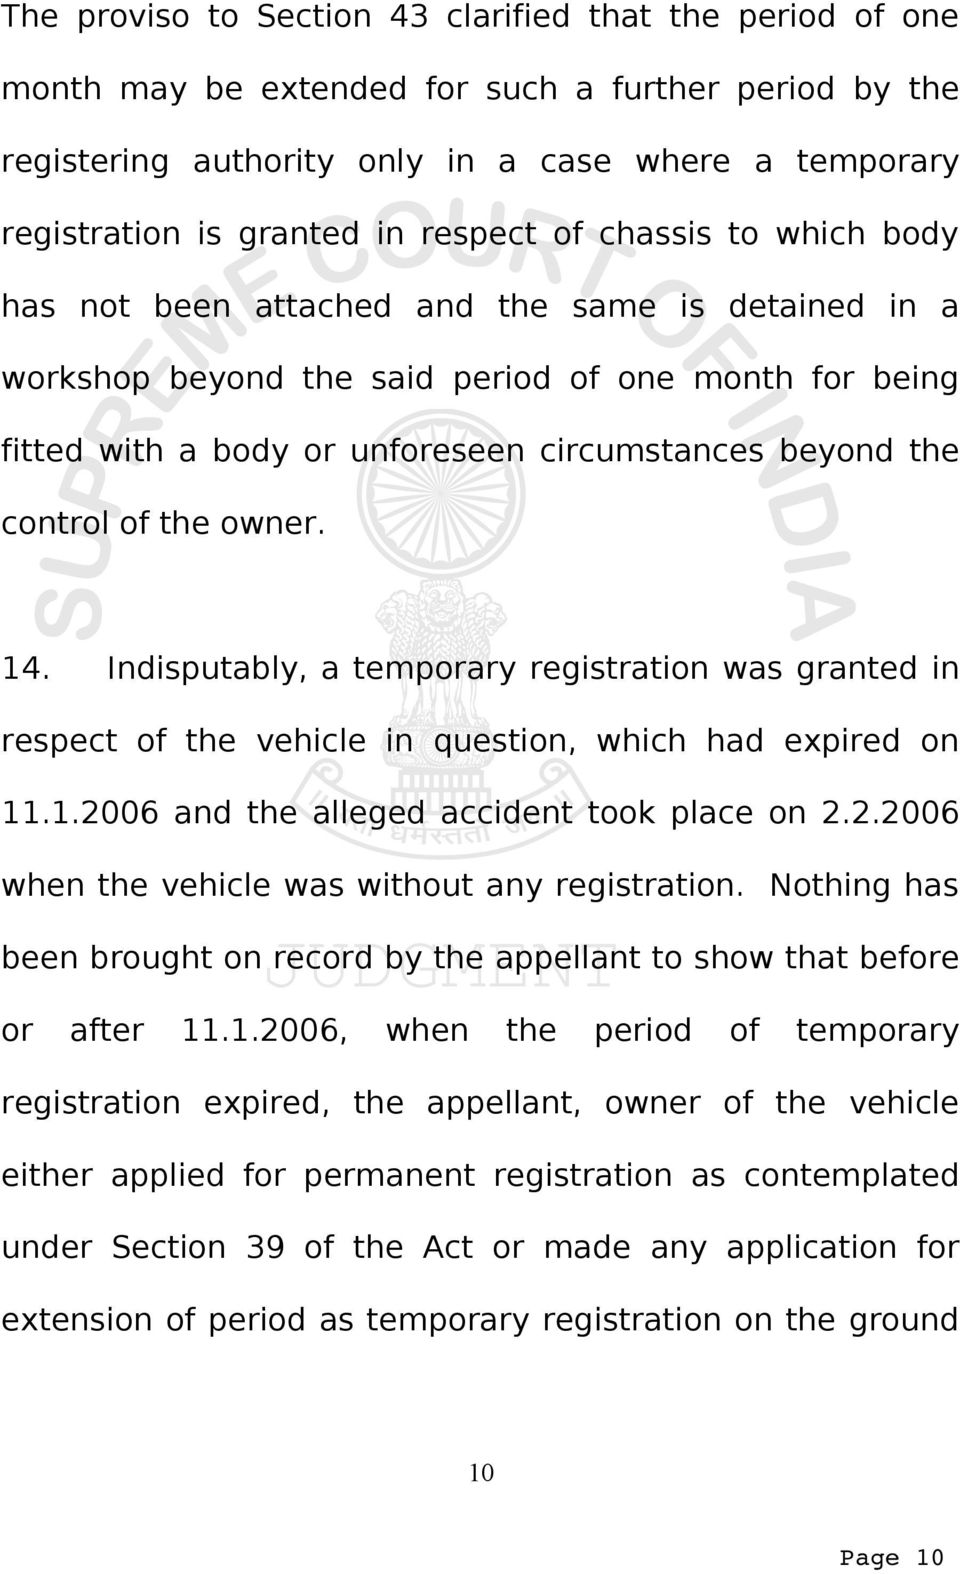 control of the owner. 14. Indisputably, a temporary registration was granted in respect of the vehicle in question, which had expired on 11.1.2006 and the alleged accident took place on 2.2.2006 when the vehicle was without any registration.